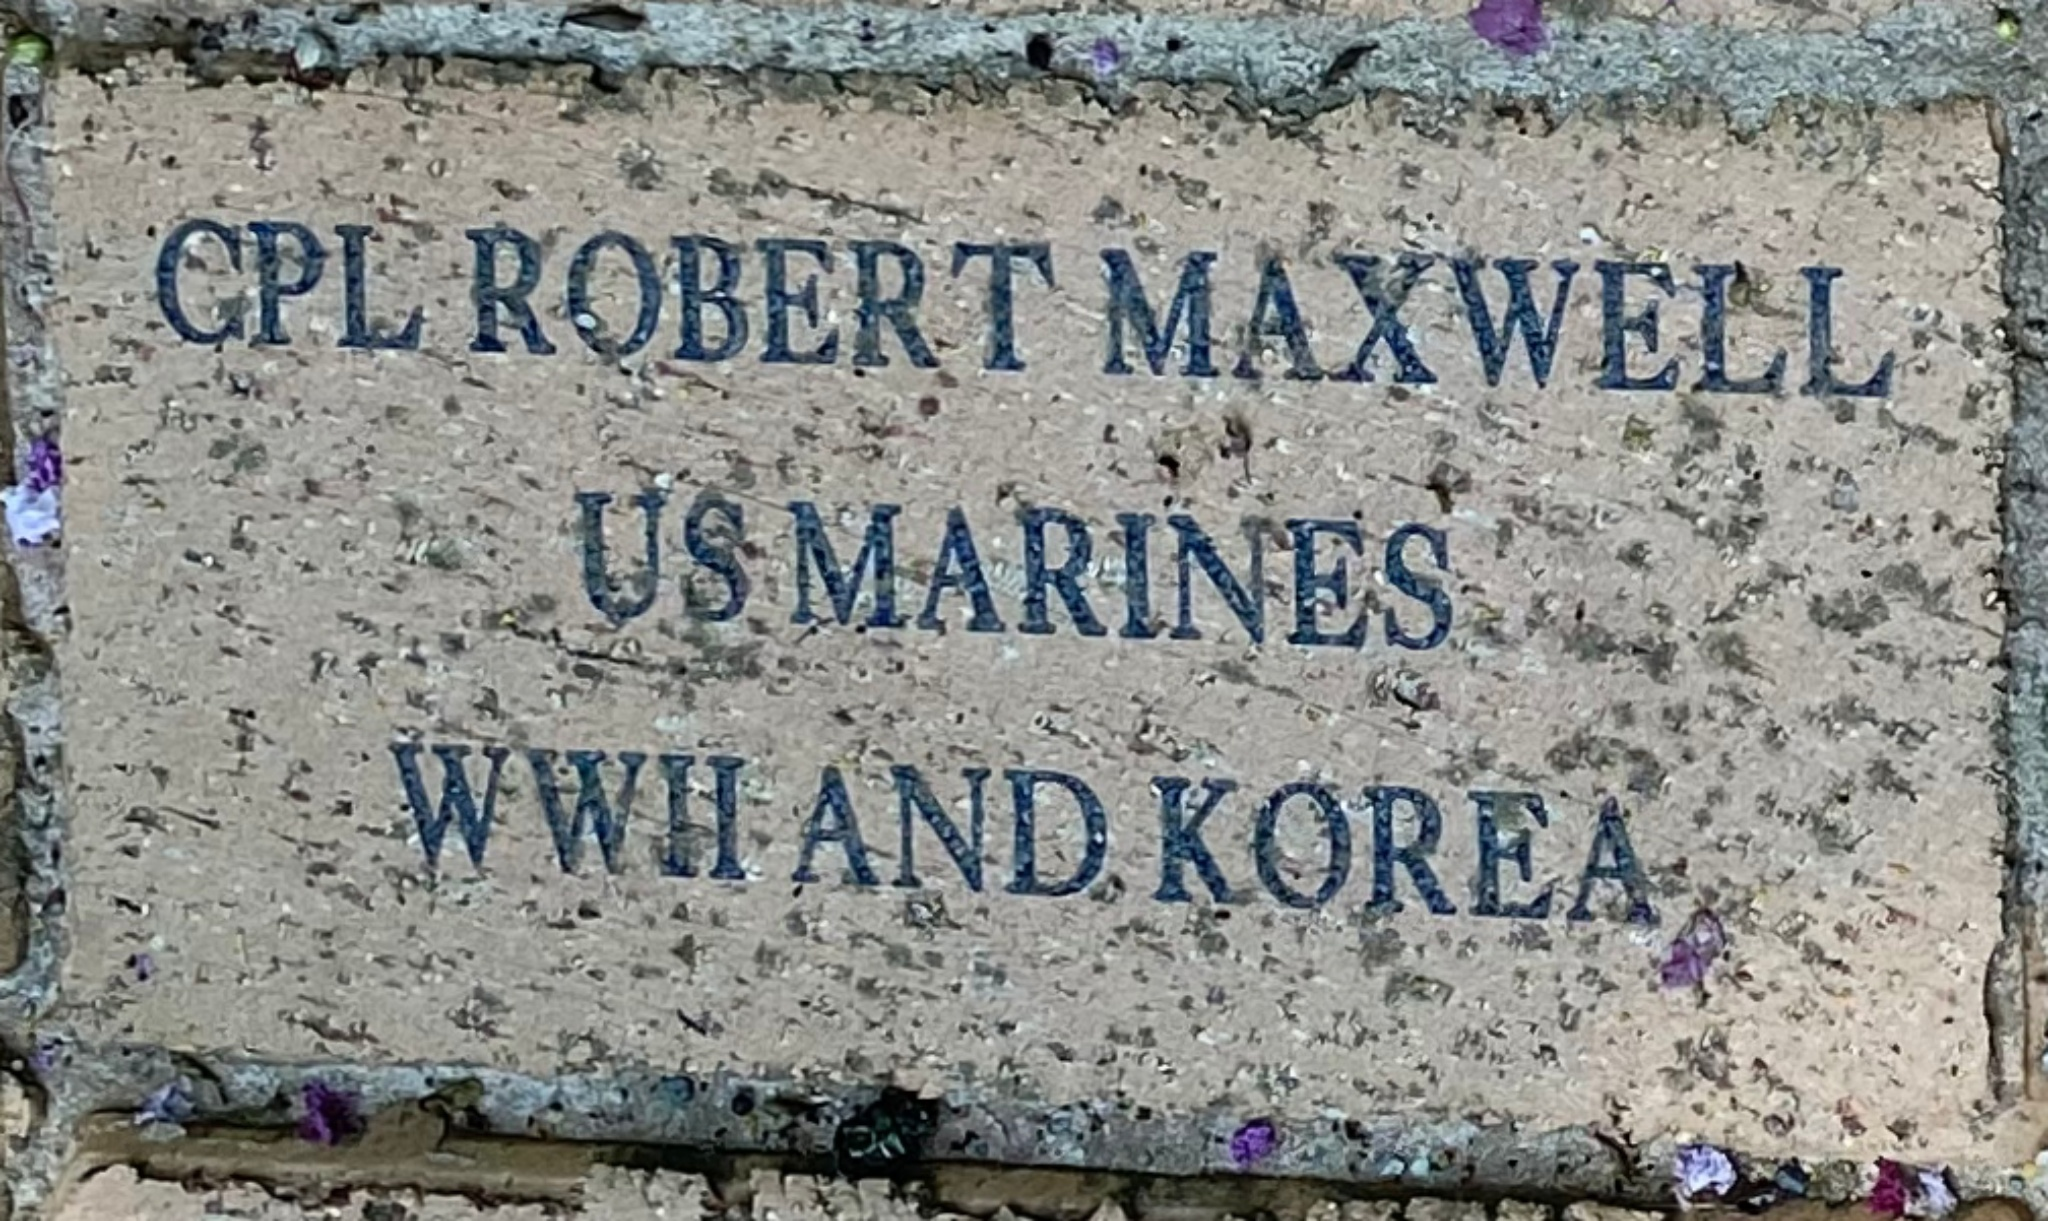 CPL ROBERT MAXWELL US MARINES WWII AND KOREA